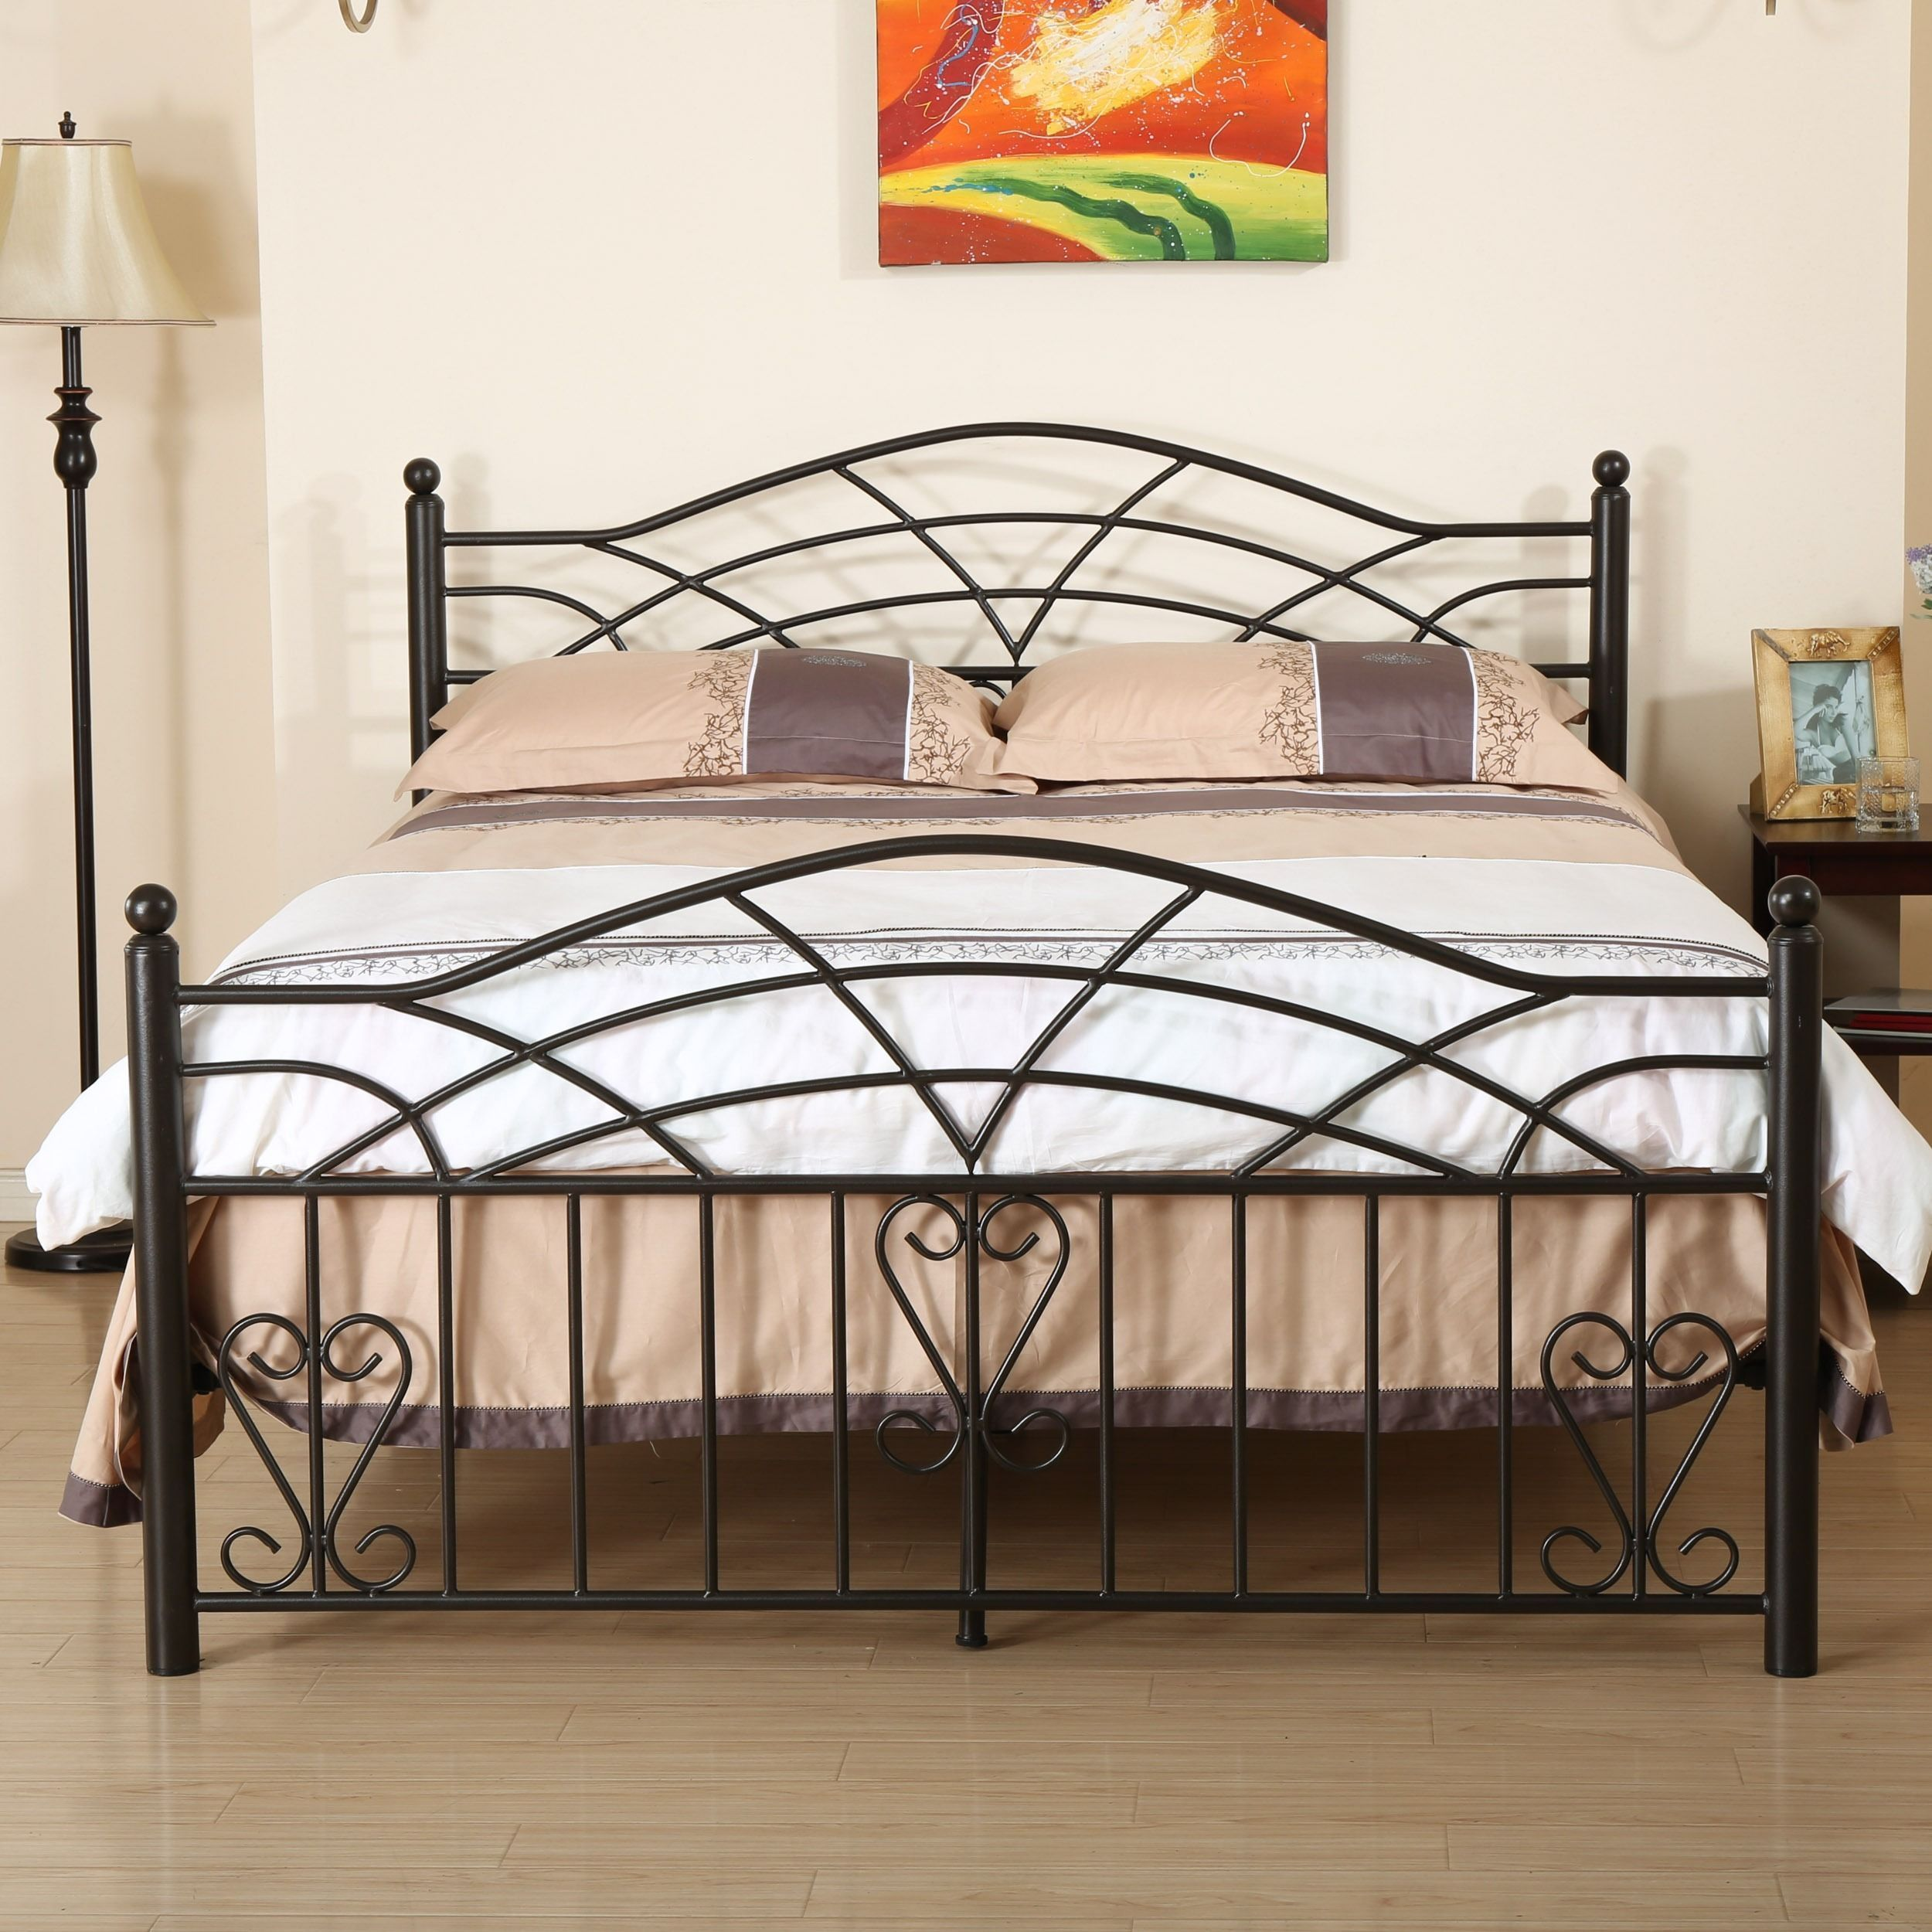 Brassfield Bed Frame By Christopher Knight Home Steel Bed Design